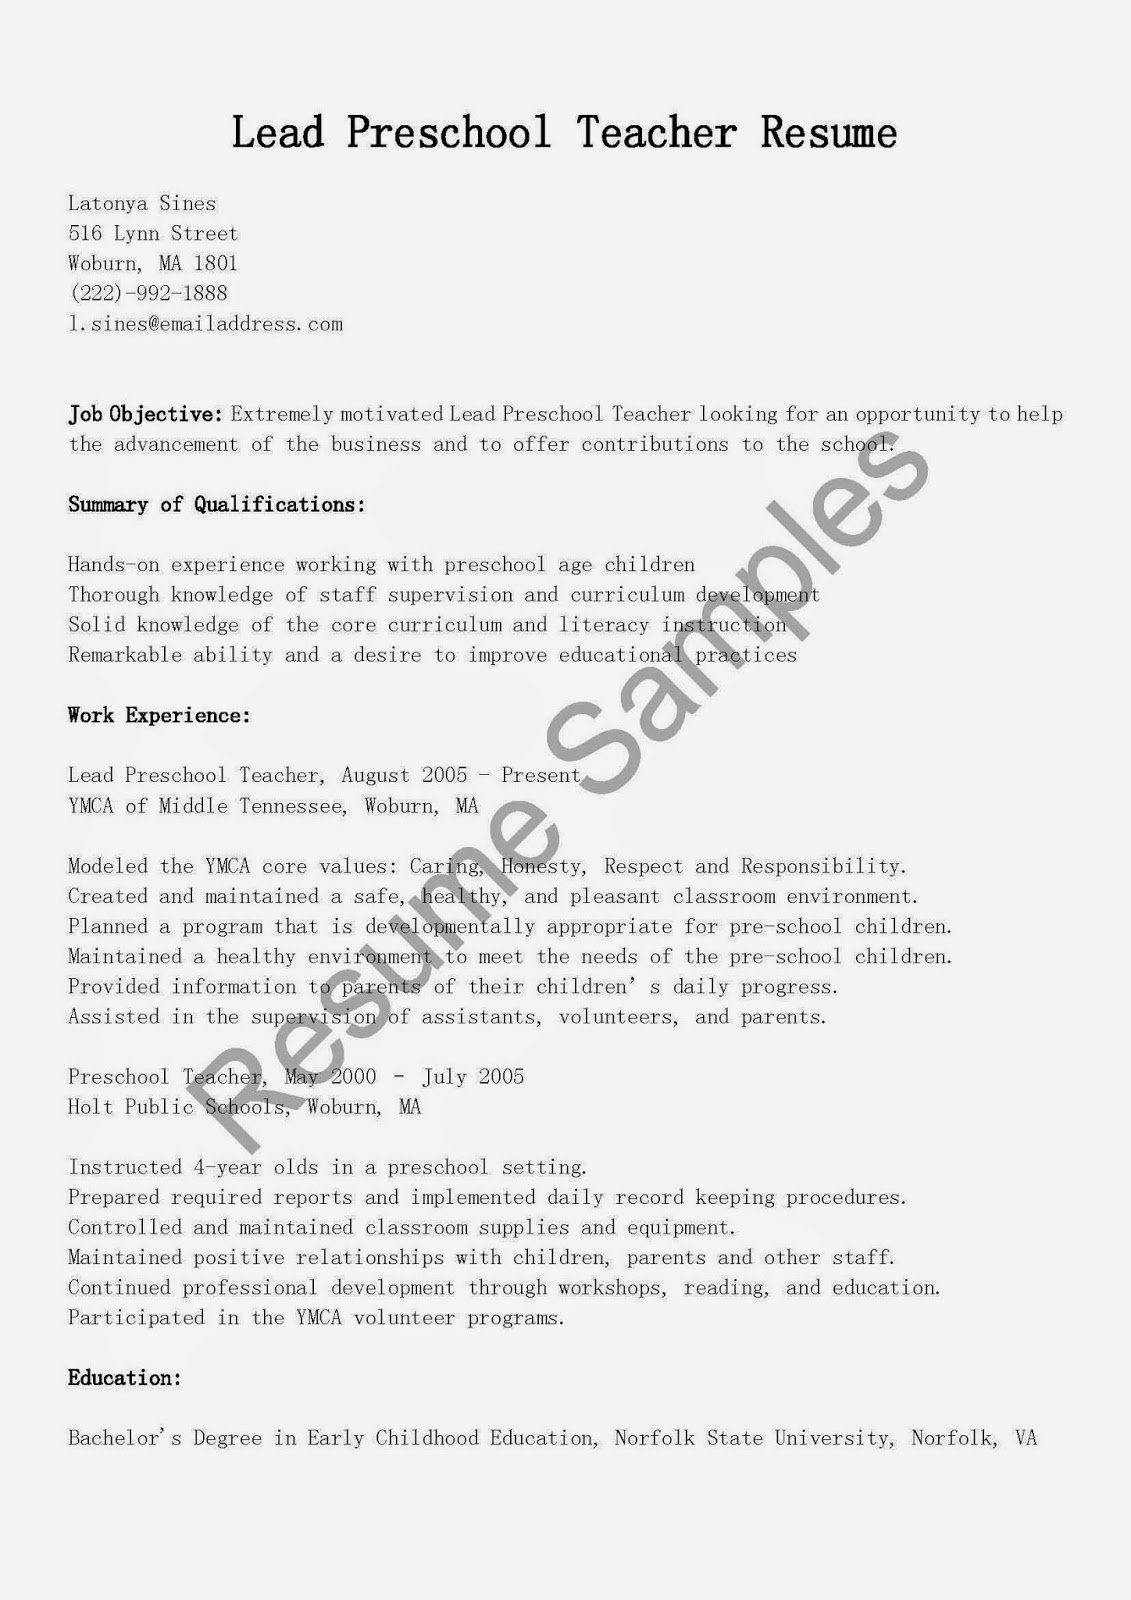 Preschool Teacher Resume Template Luxury Resume Samples